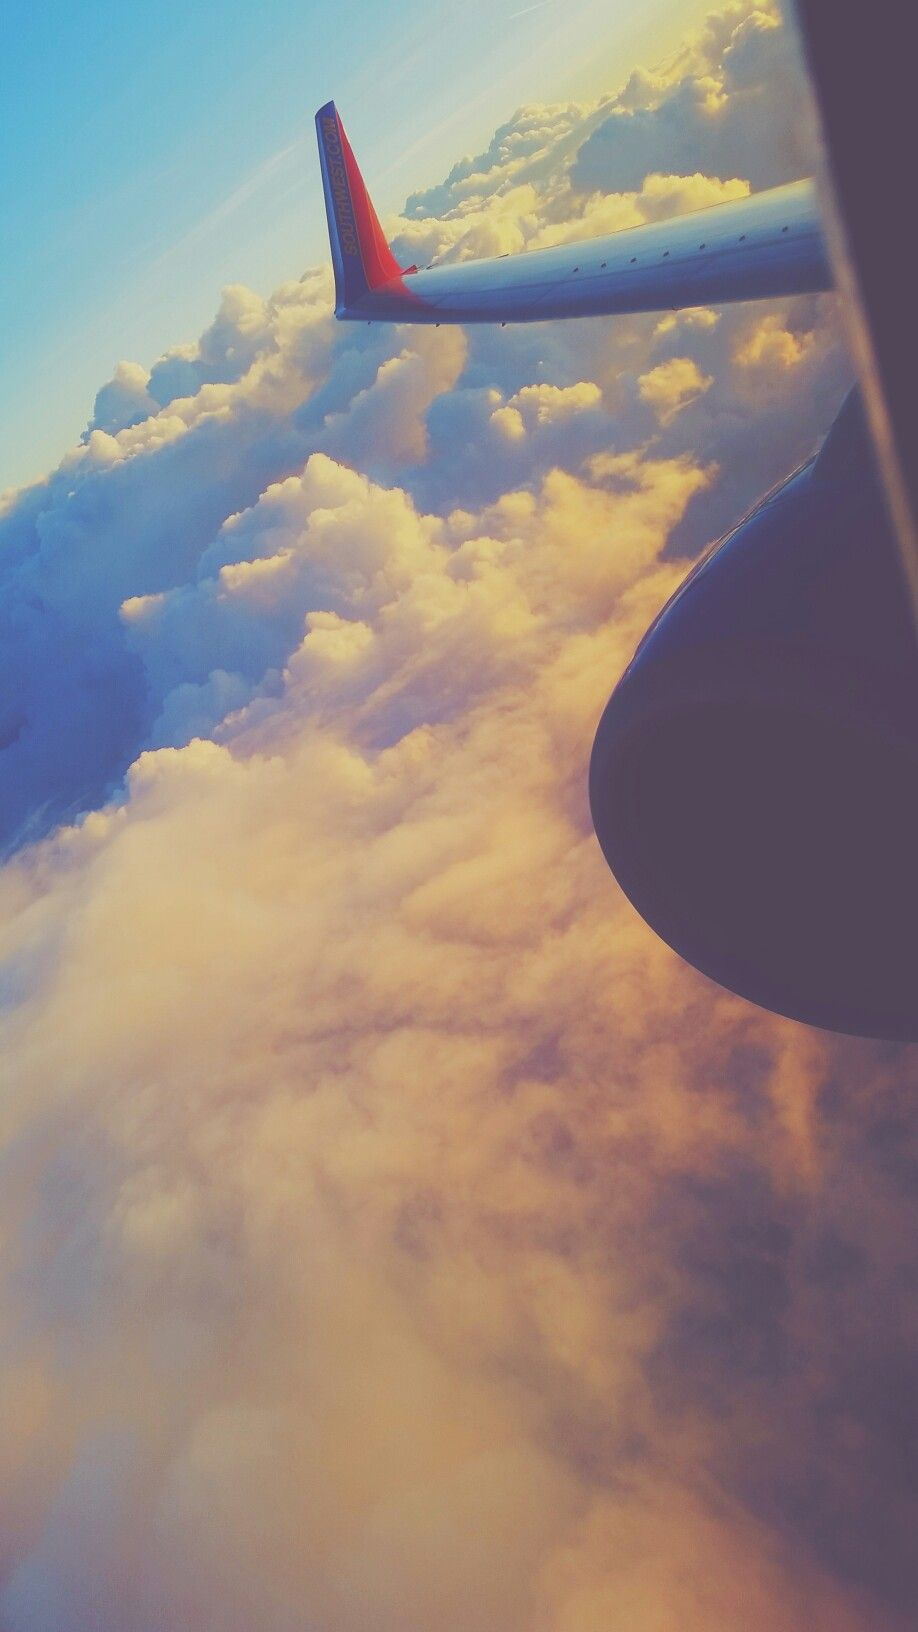 Lets Fly Away By Chloe Price Vsco Photography Tumblr Airplane Summer